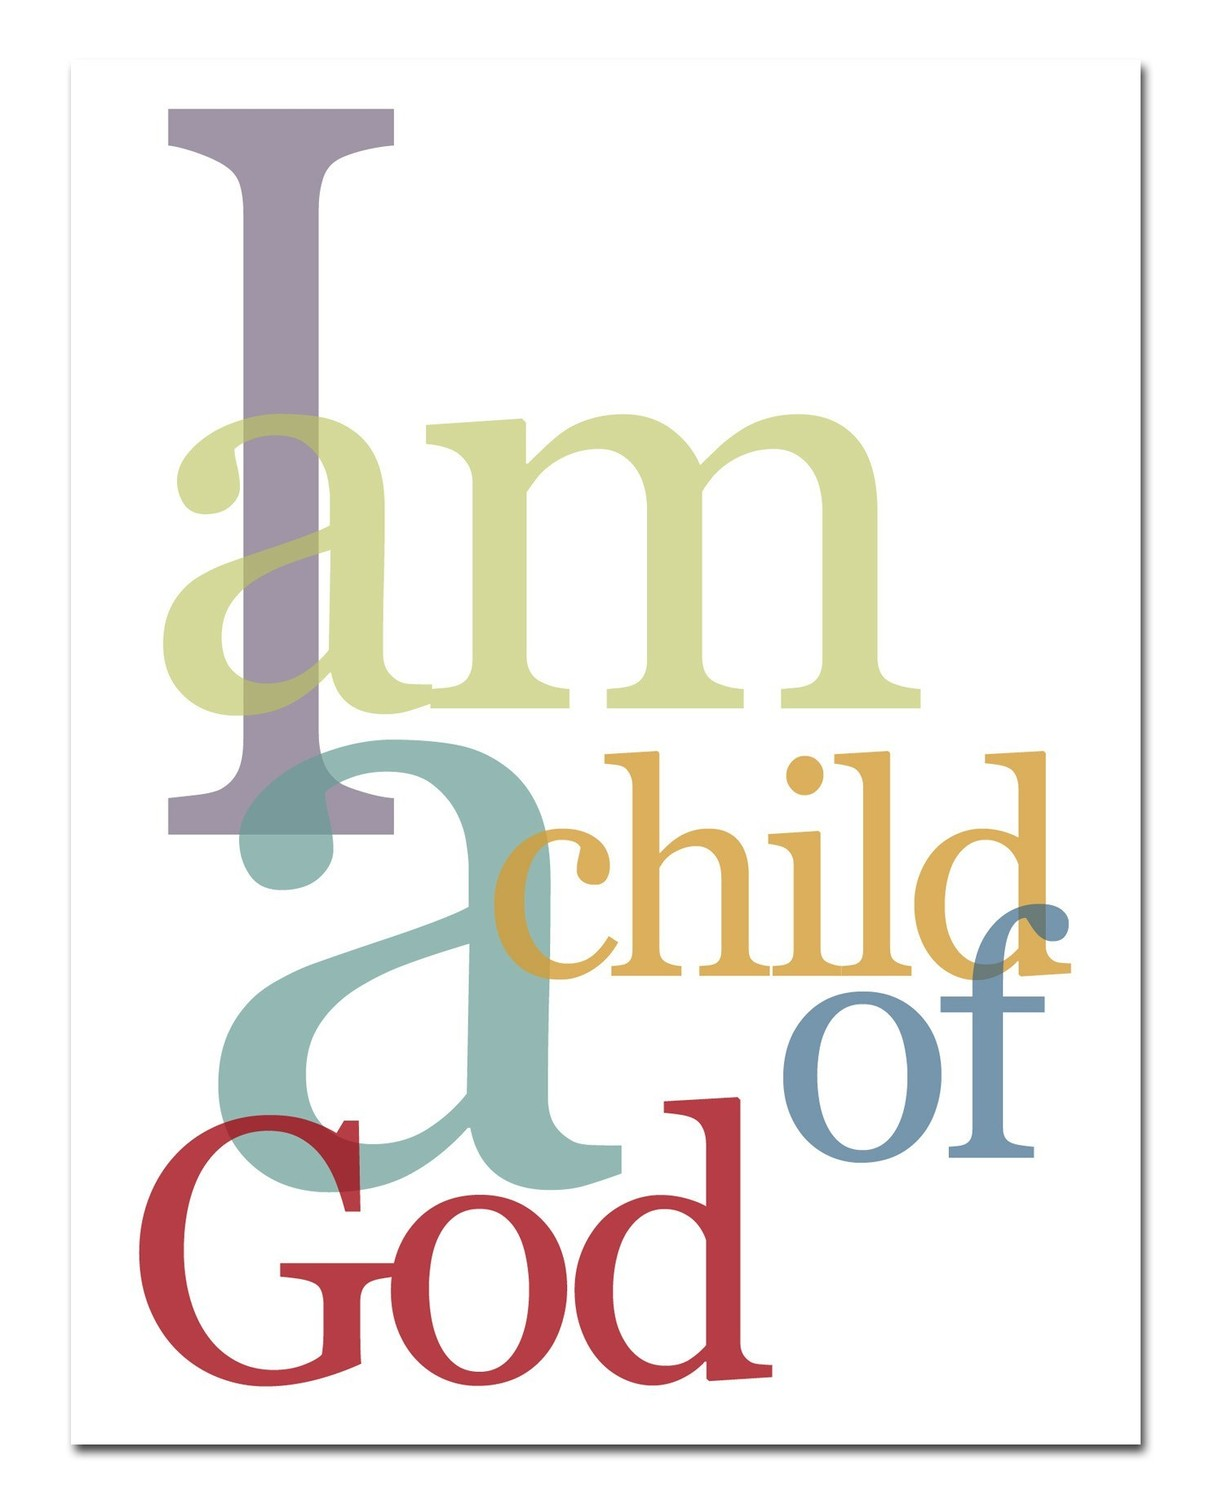 image relating to I Am a Child of God Printable named I AM A Kid OF GOD Pentecostal Theology